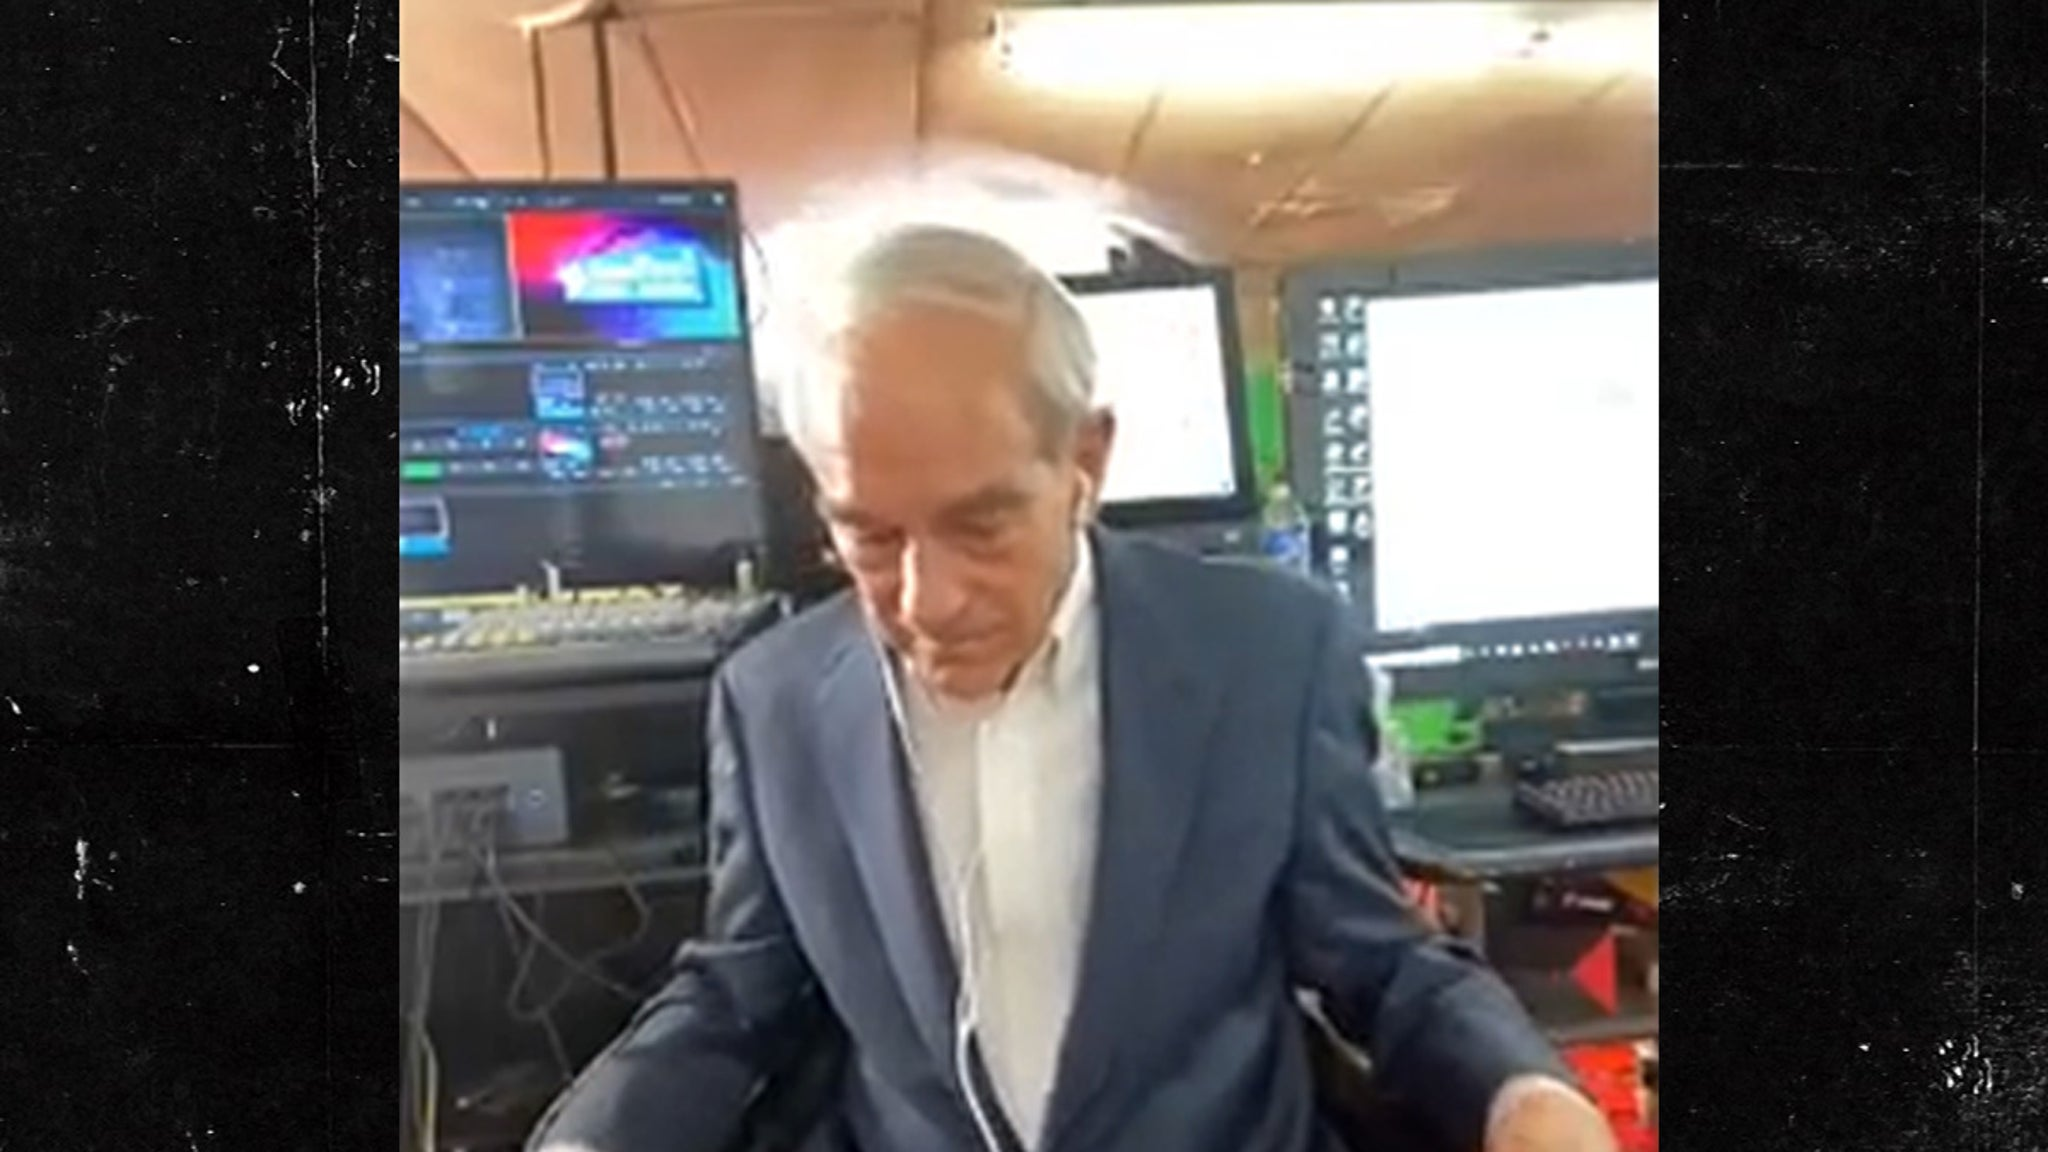 Ron Paul Wears Daisy Dukes with Suit Jacket for Interview thumbnail